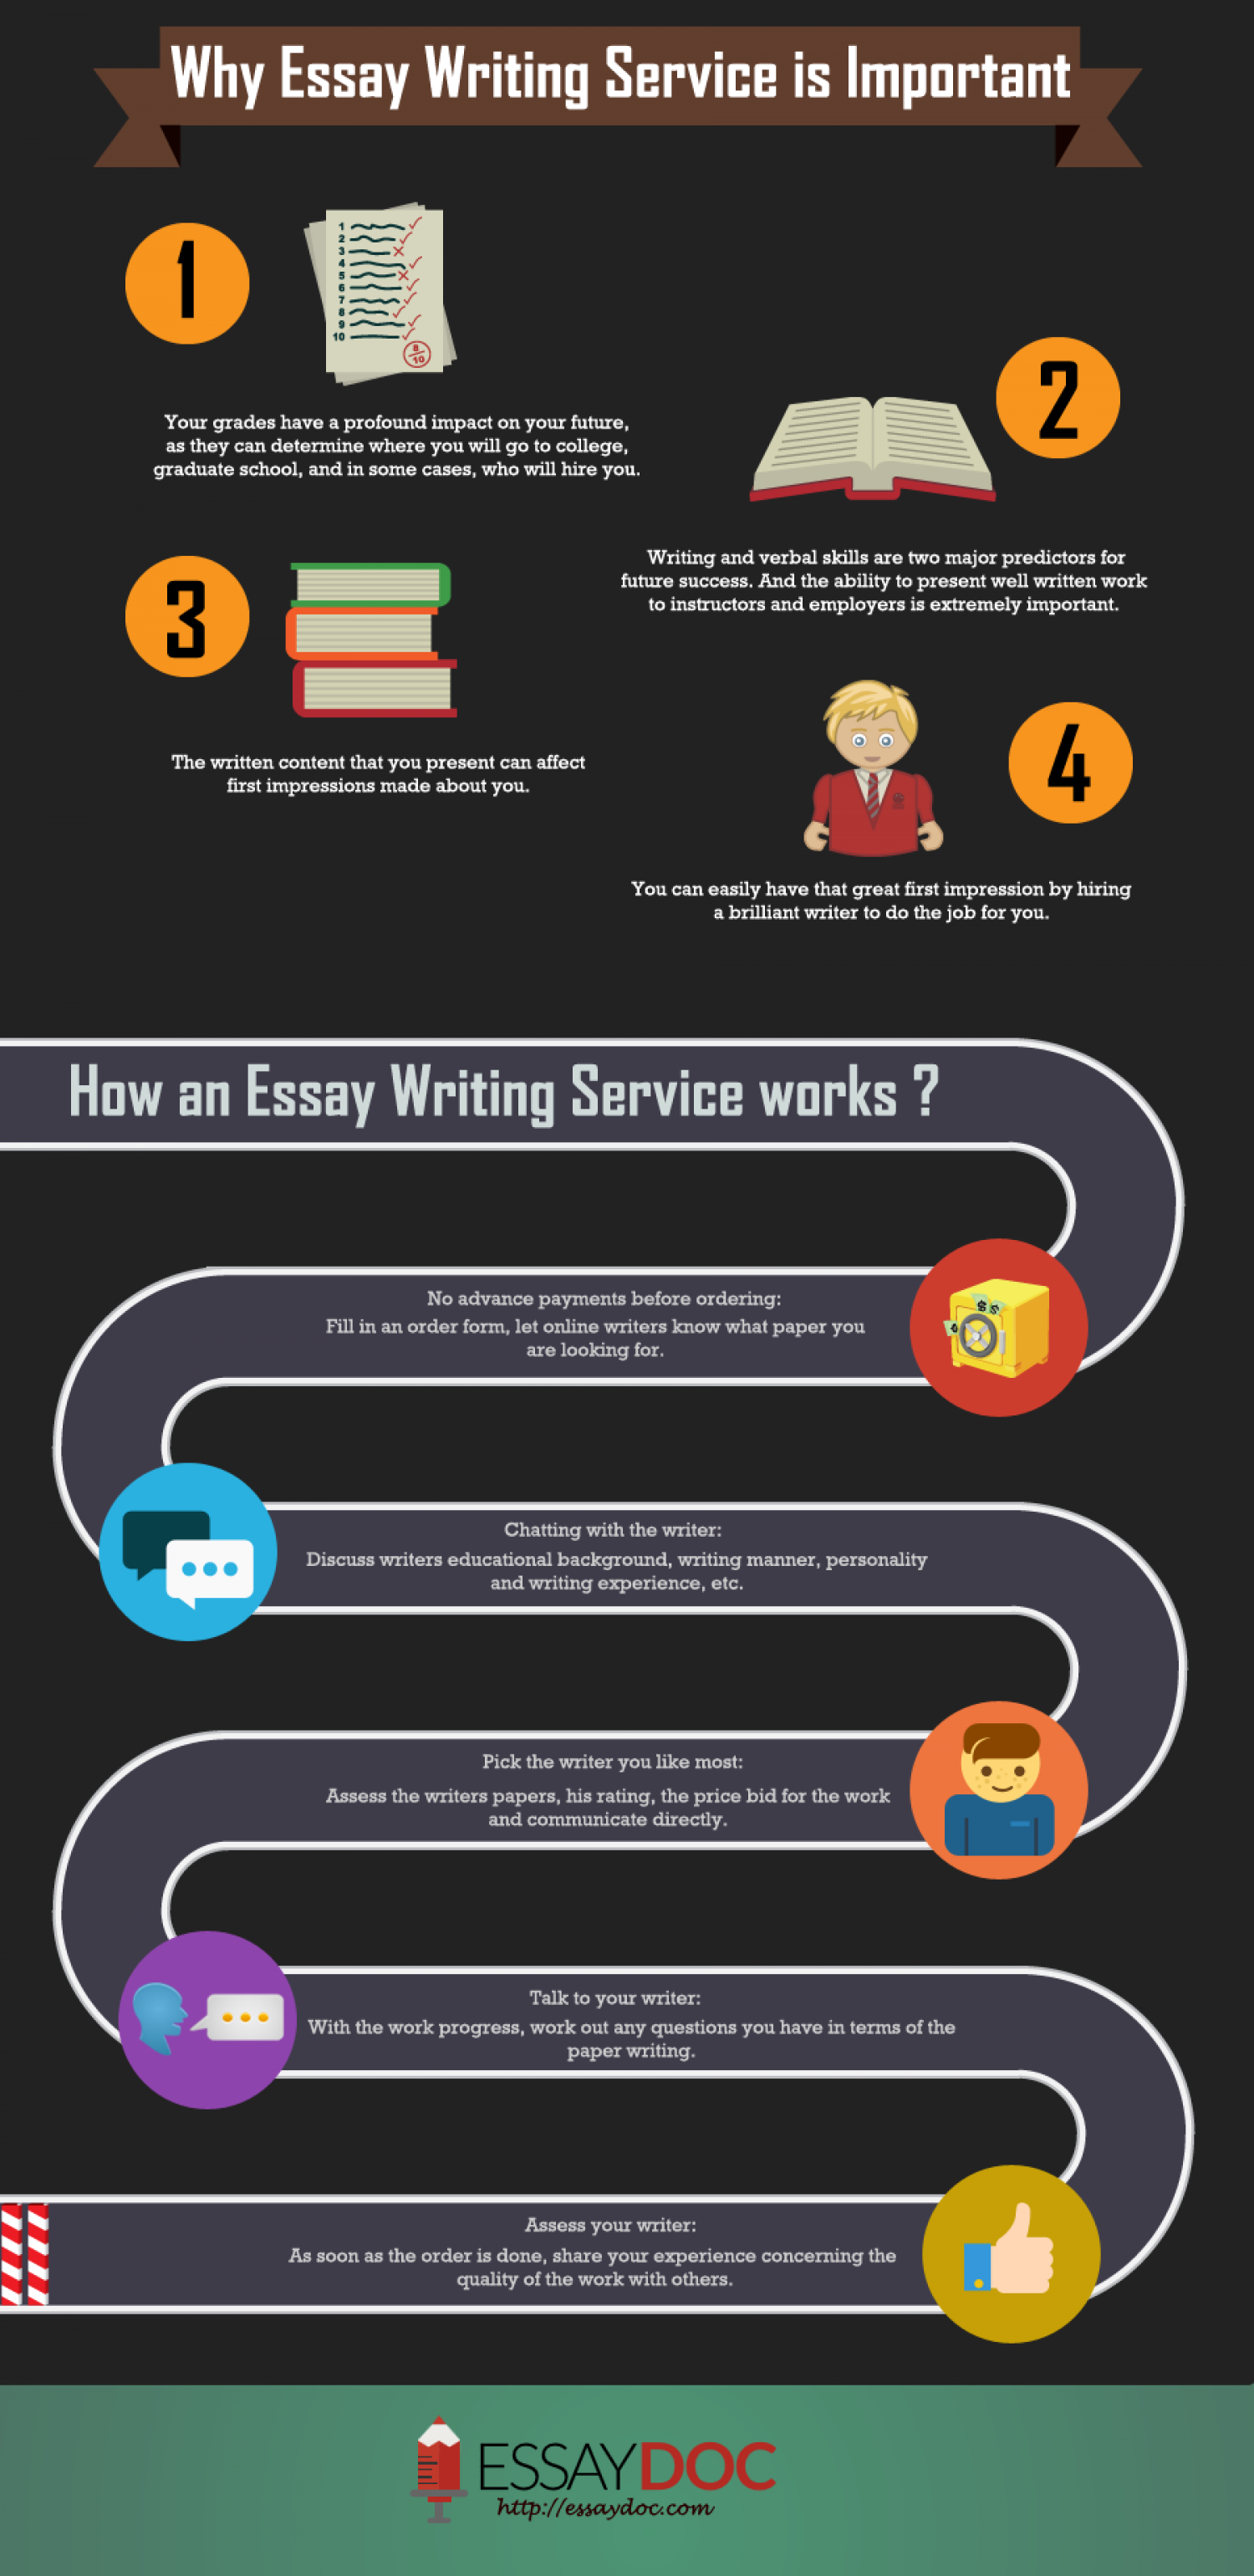 Why writing is important essay